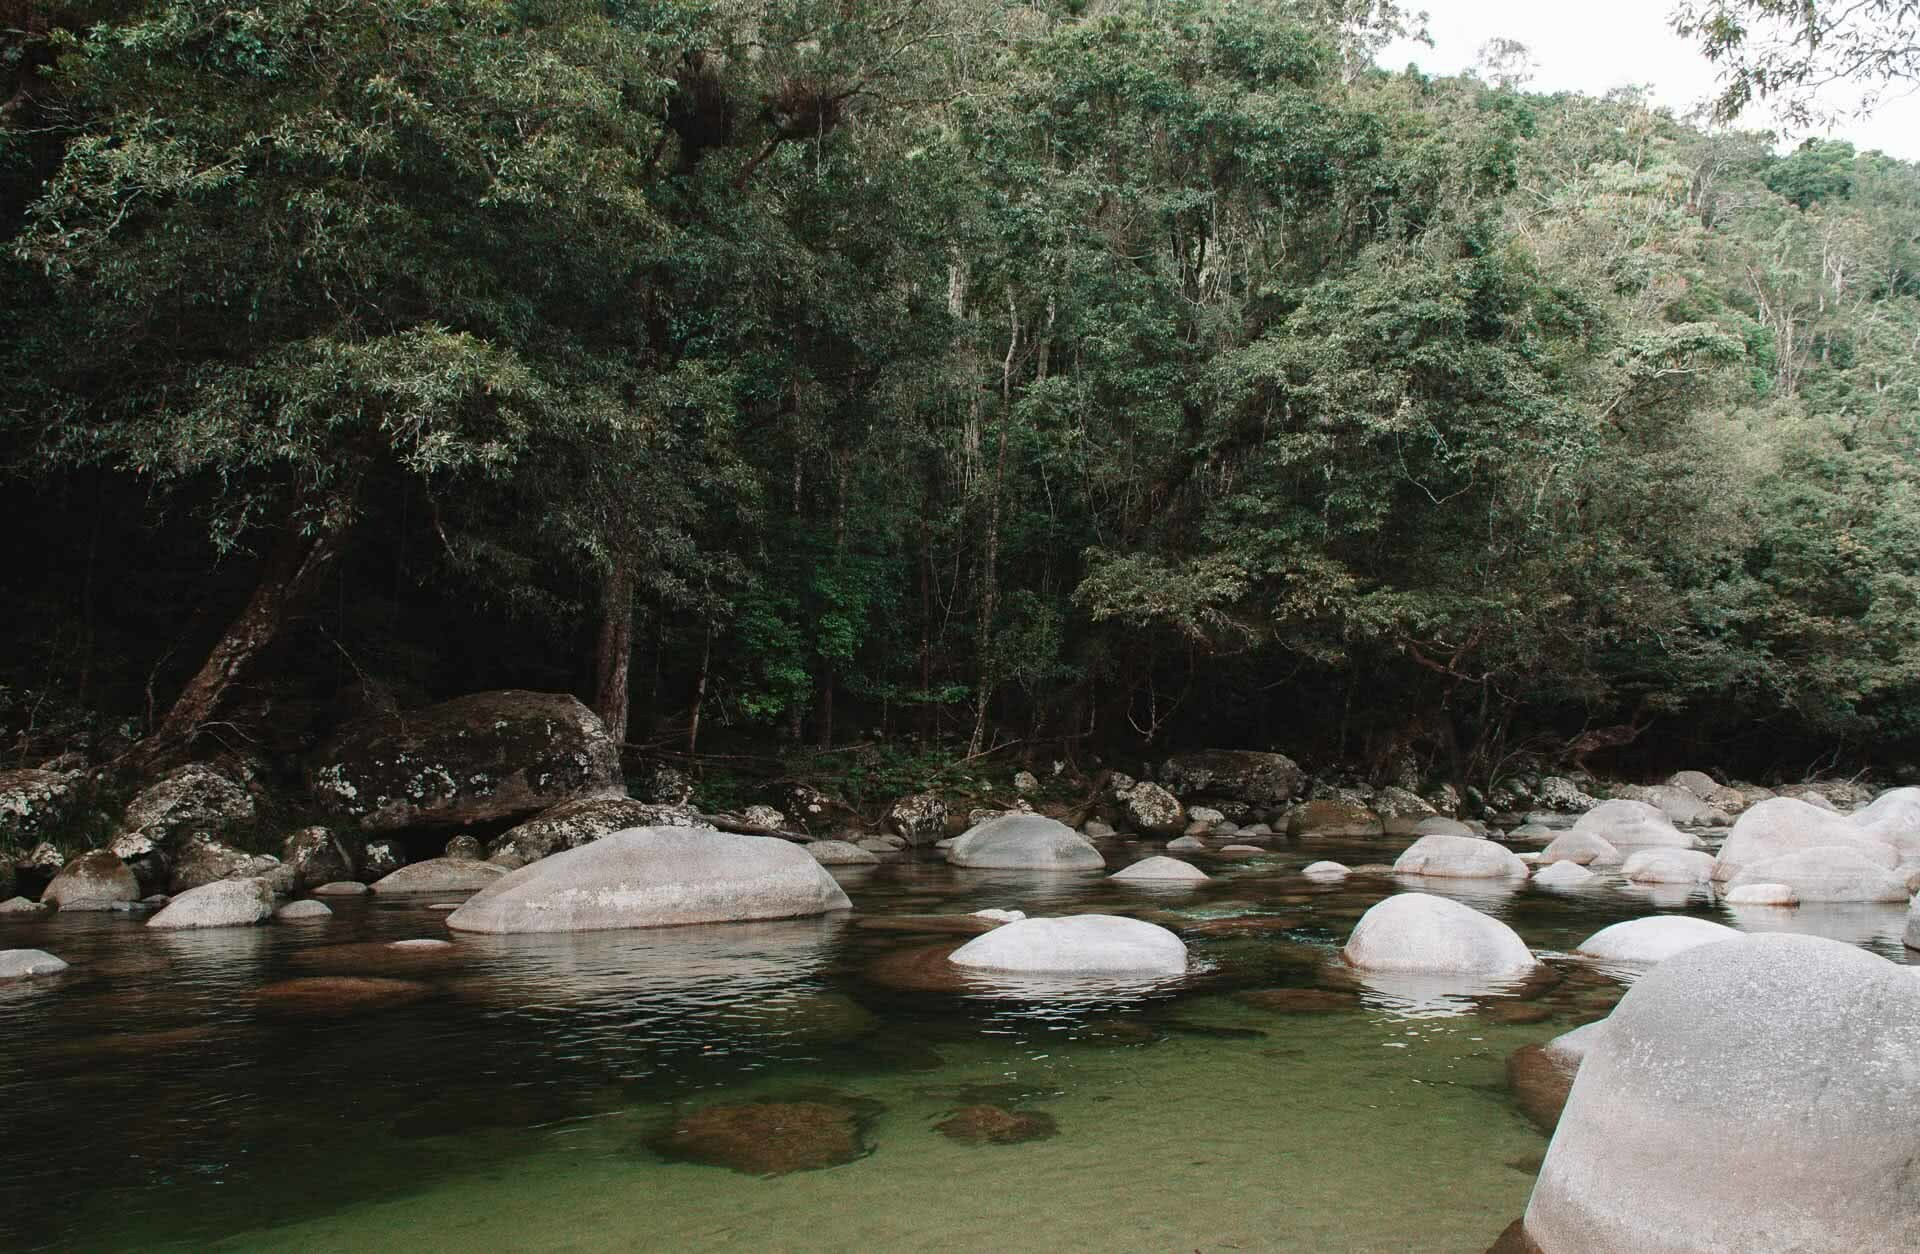 mossman gorge Swimming Hole, Jaime wilson, Great Barrier Reef Drive – This Road Trip North From Cairns Has It All, Tropical North Queensland, wild swimming, gorge